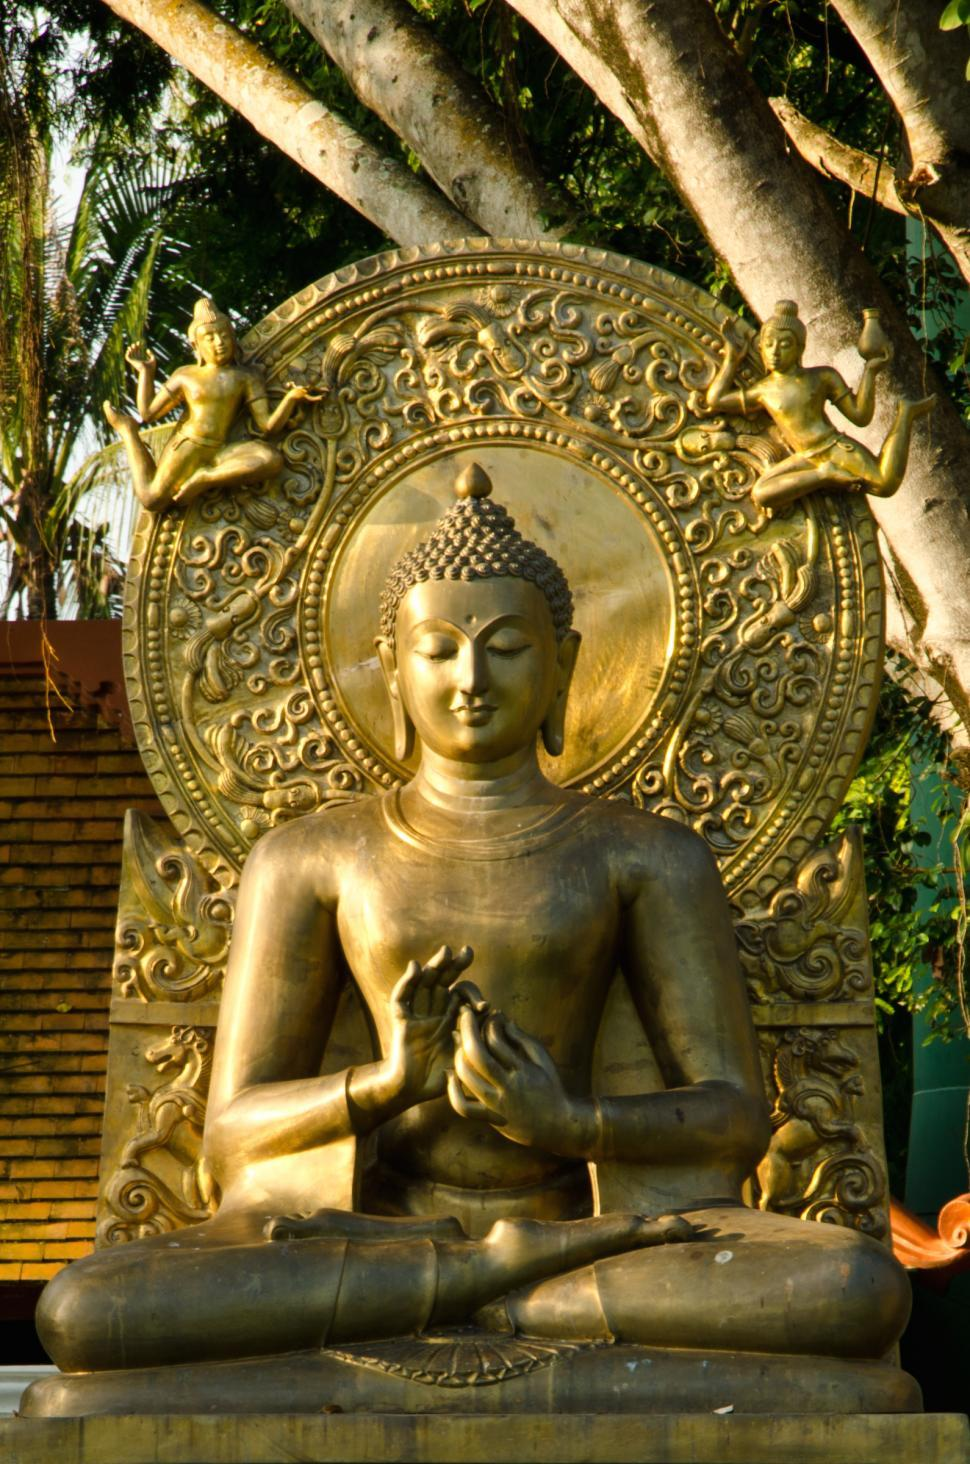 Download Free Stock HD Photo of Buddha Image Online